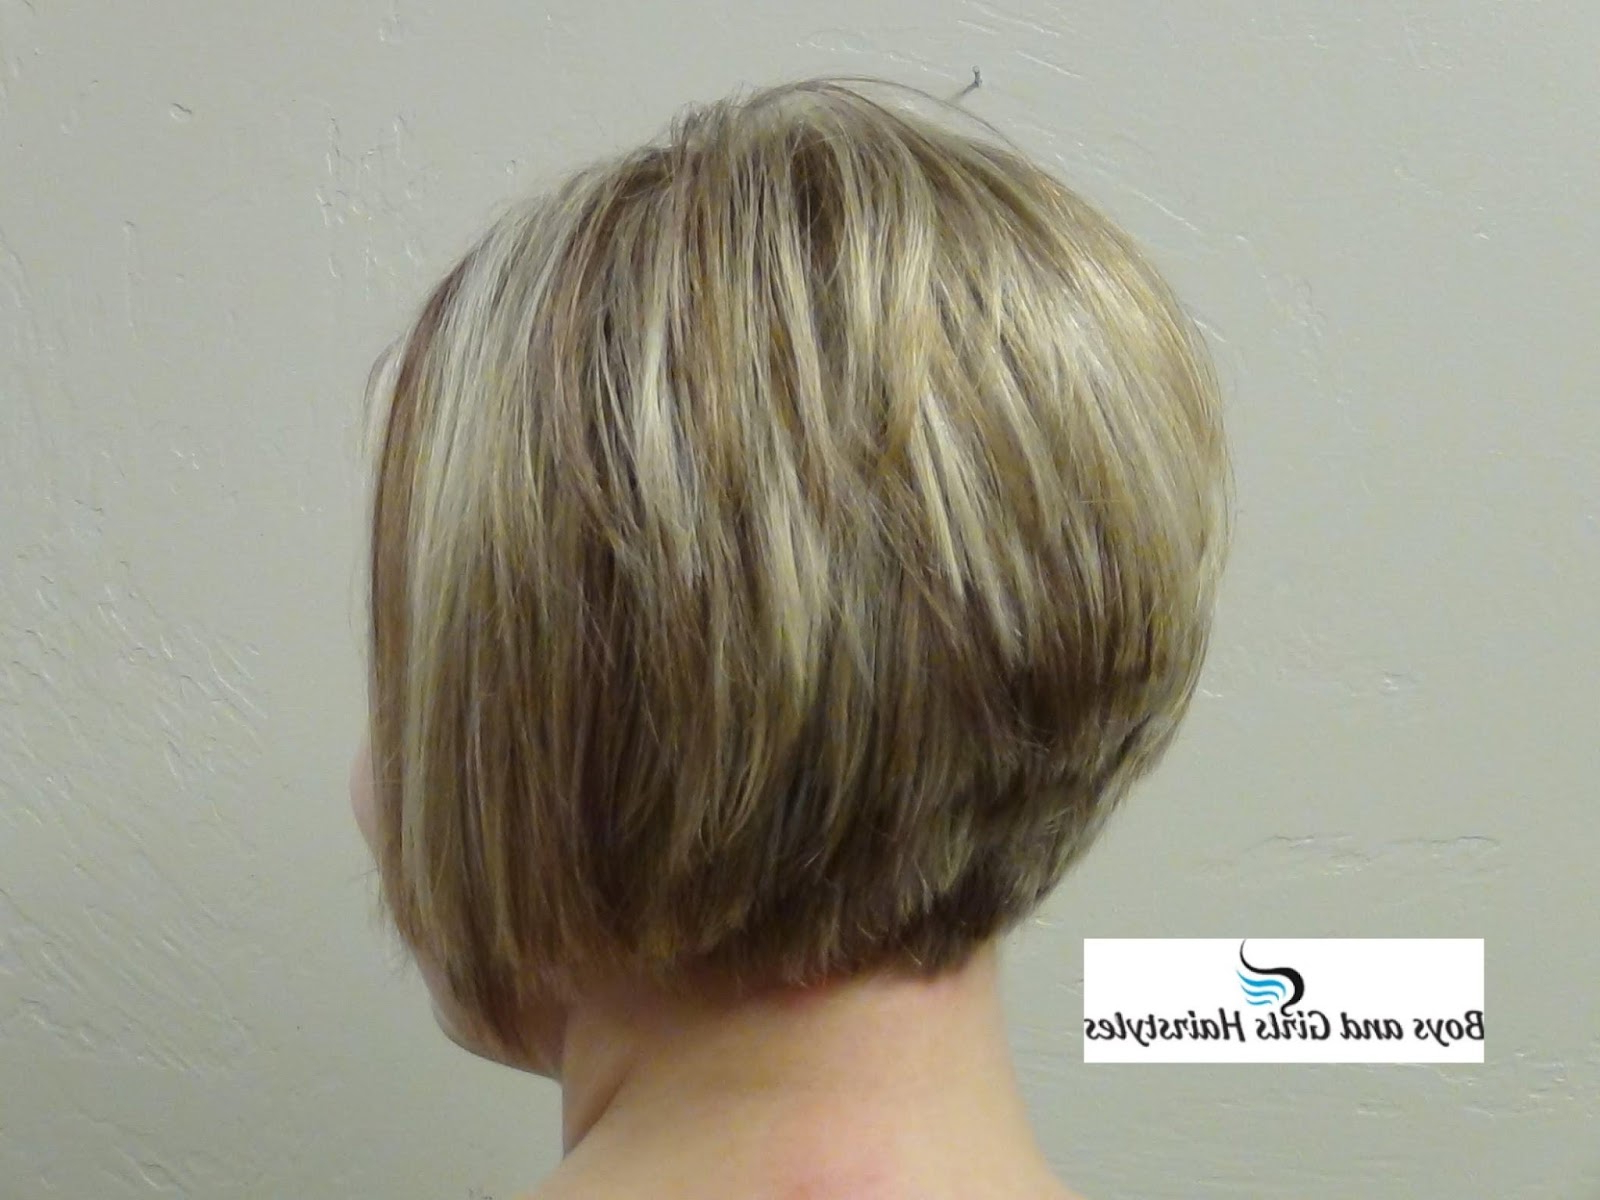 46 A Line Bob Haircuts For Women | Hairstylo For Simple And Stylish Bob Haircuts (View 10 of 20)